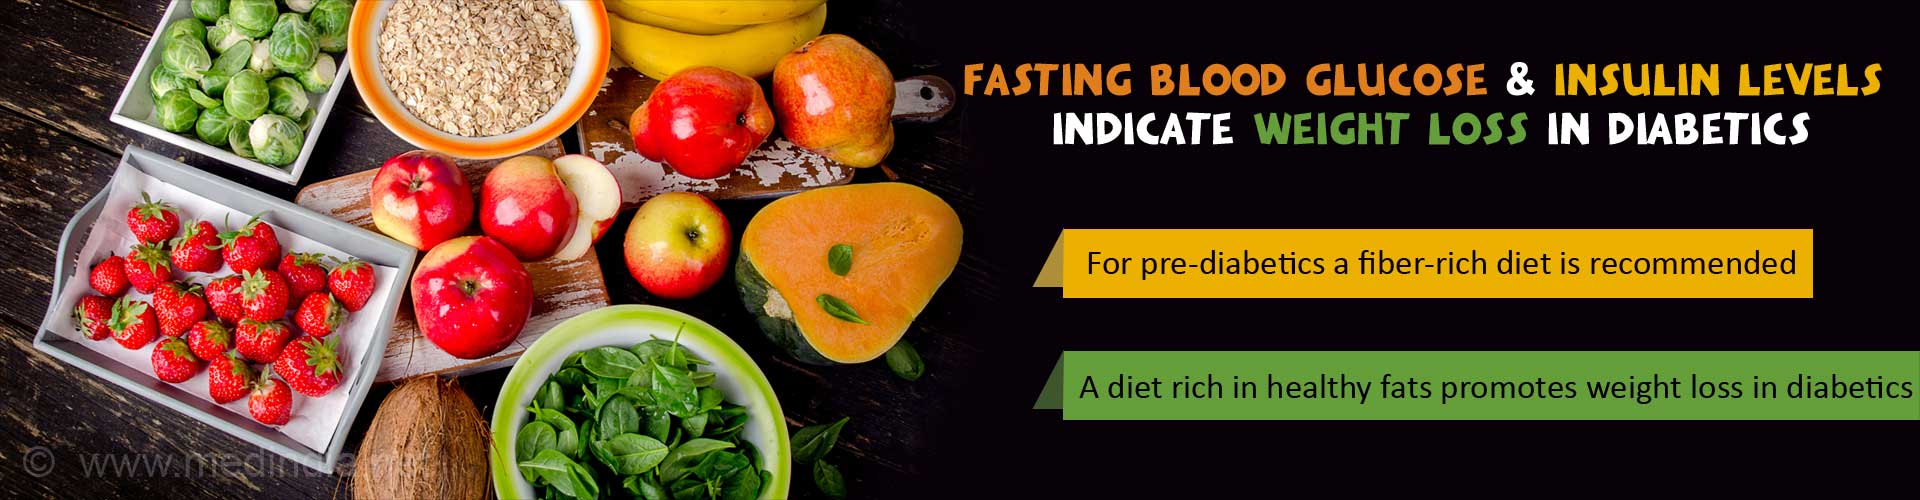 Fasting blood glucose & insulin levels indicate weight loss in diabetes